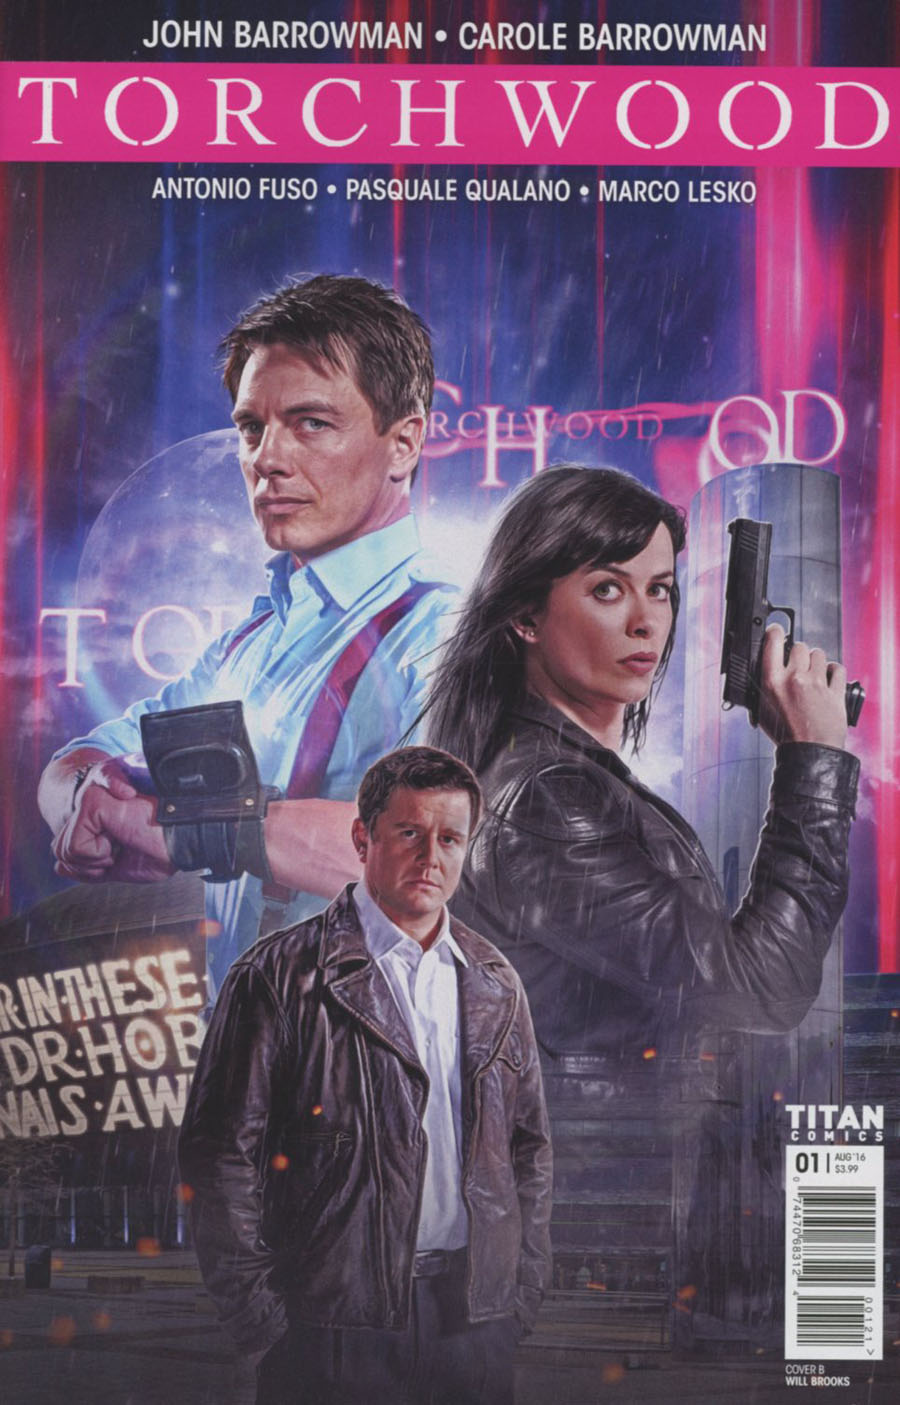 Torchwood Vol 2 #1 Cover B Variant Photo Cover